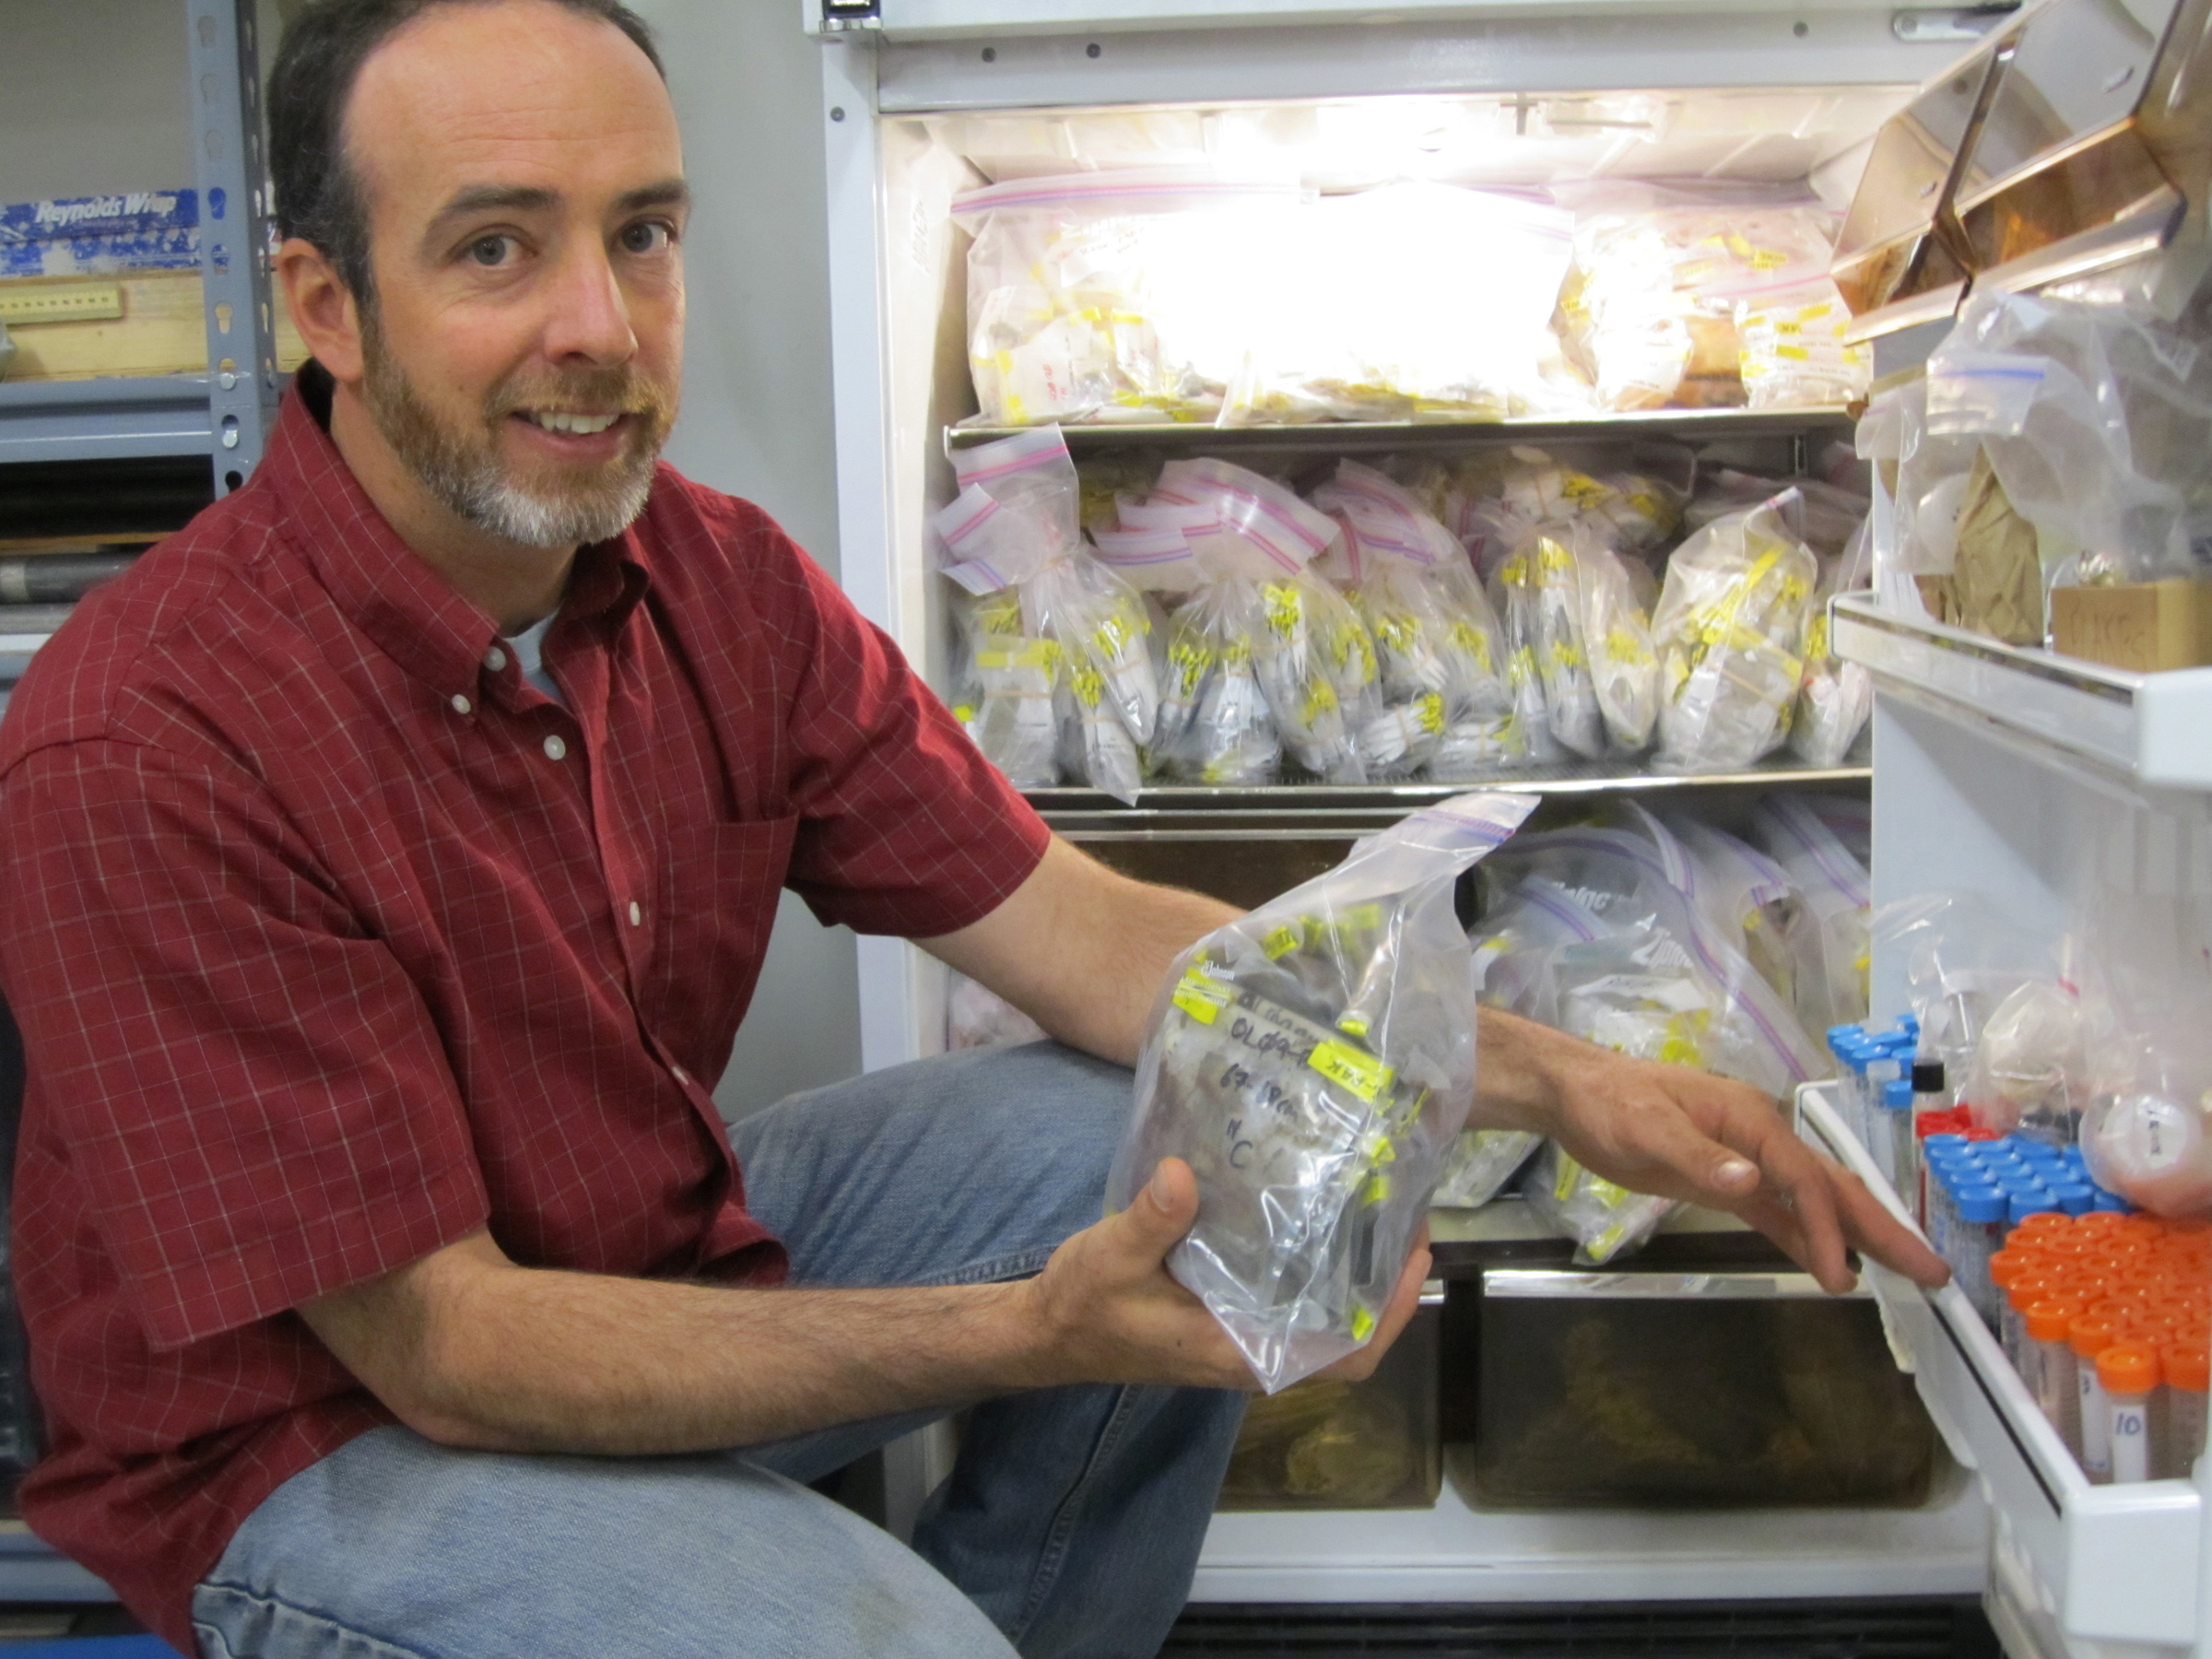 University of Utah researcher Mitchell Power with refrigerated sediment samples in a lab at the Natural History Museum of Utah, where he is a curator. Charcoal in such sediments was the key evidence used in a new study by Powers and colleagues suggesting that the Little Ice Age – a period of global cooling – explains why there were fewer fires after about 1500.